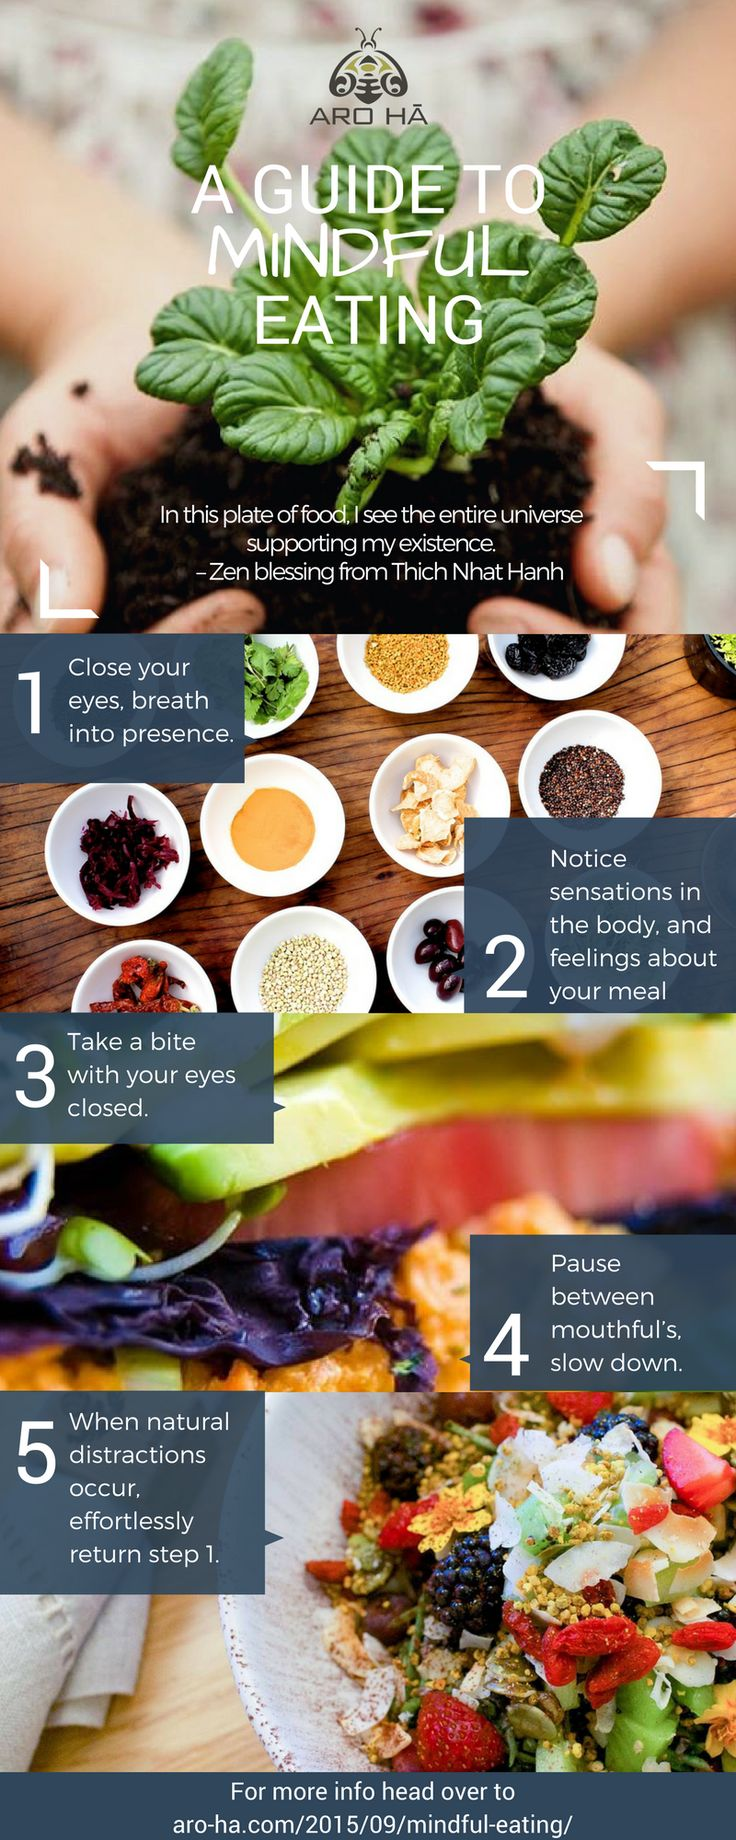 Next time you sit down to a meal, or a snack, try this practice.   Though the goal is not perfect uninterrupted attention through your meals, you'll find an enjoyable shift when you choose to have micro-mindful moments during your meals.  Whether listening to a friend, or enjoying a smell, you always have a choice to be present.